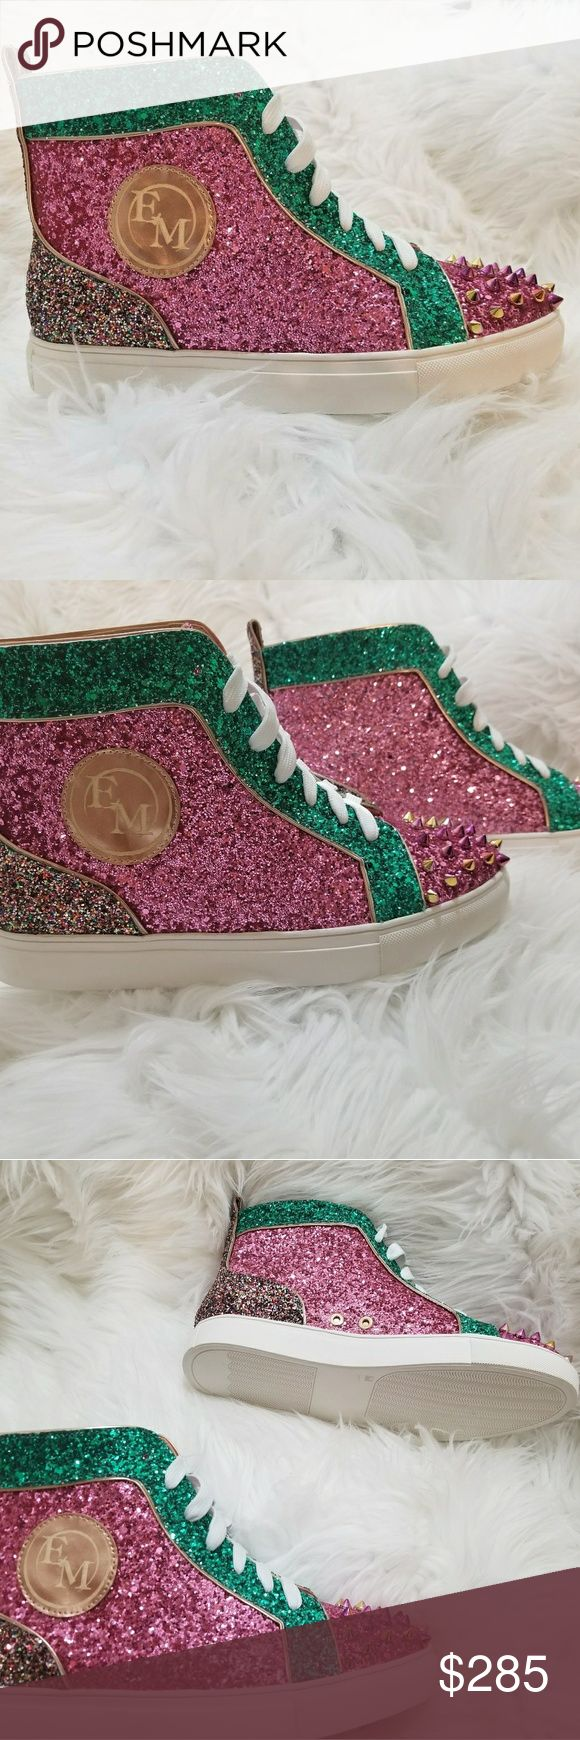 Women Sneakers Brand new Women sneaker encrusted with glitter and swarovski crystals. Stuffed toe. Statement shoe! Shoes Sneakers